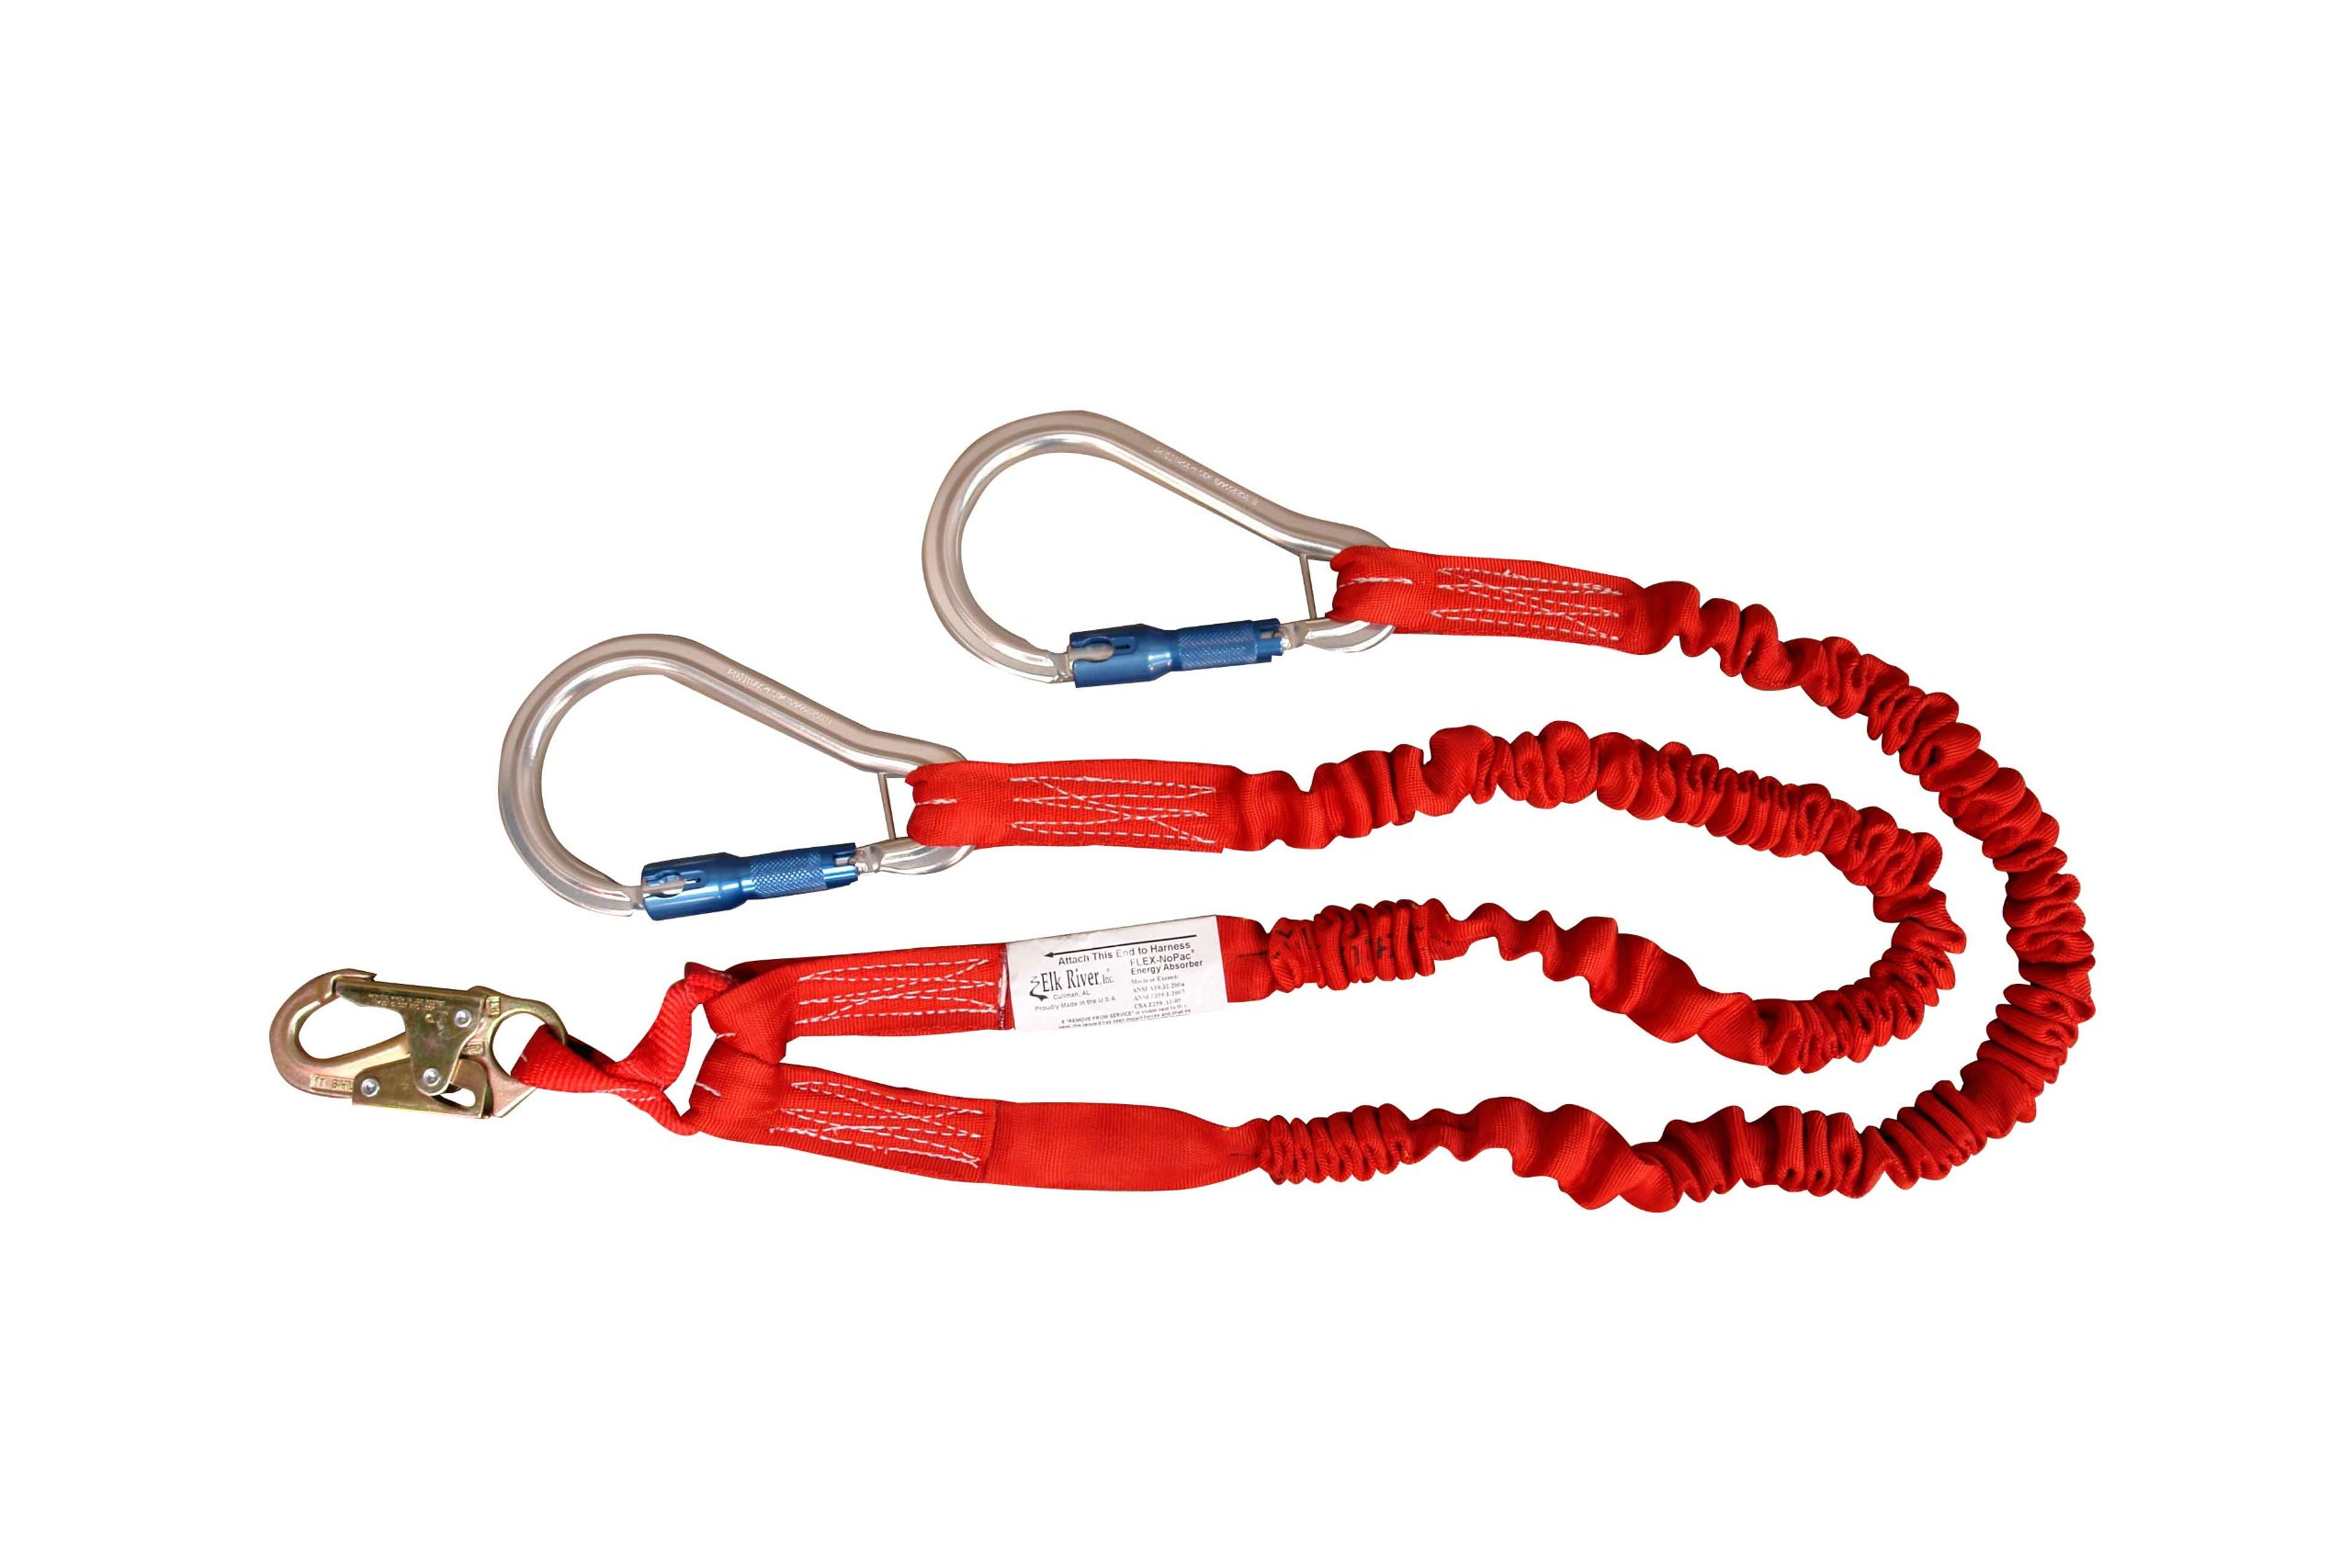 Elk River 35416 Flex-NoPac Energy-Absorbing 2 Leg Polyester Web Lanyard with Zsnaphook and Aluminum Carabiner, 3600 lbs Gate, 6' Length x 1-1/2'' Width